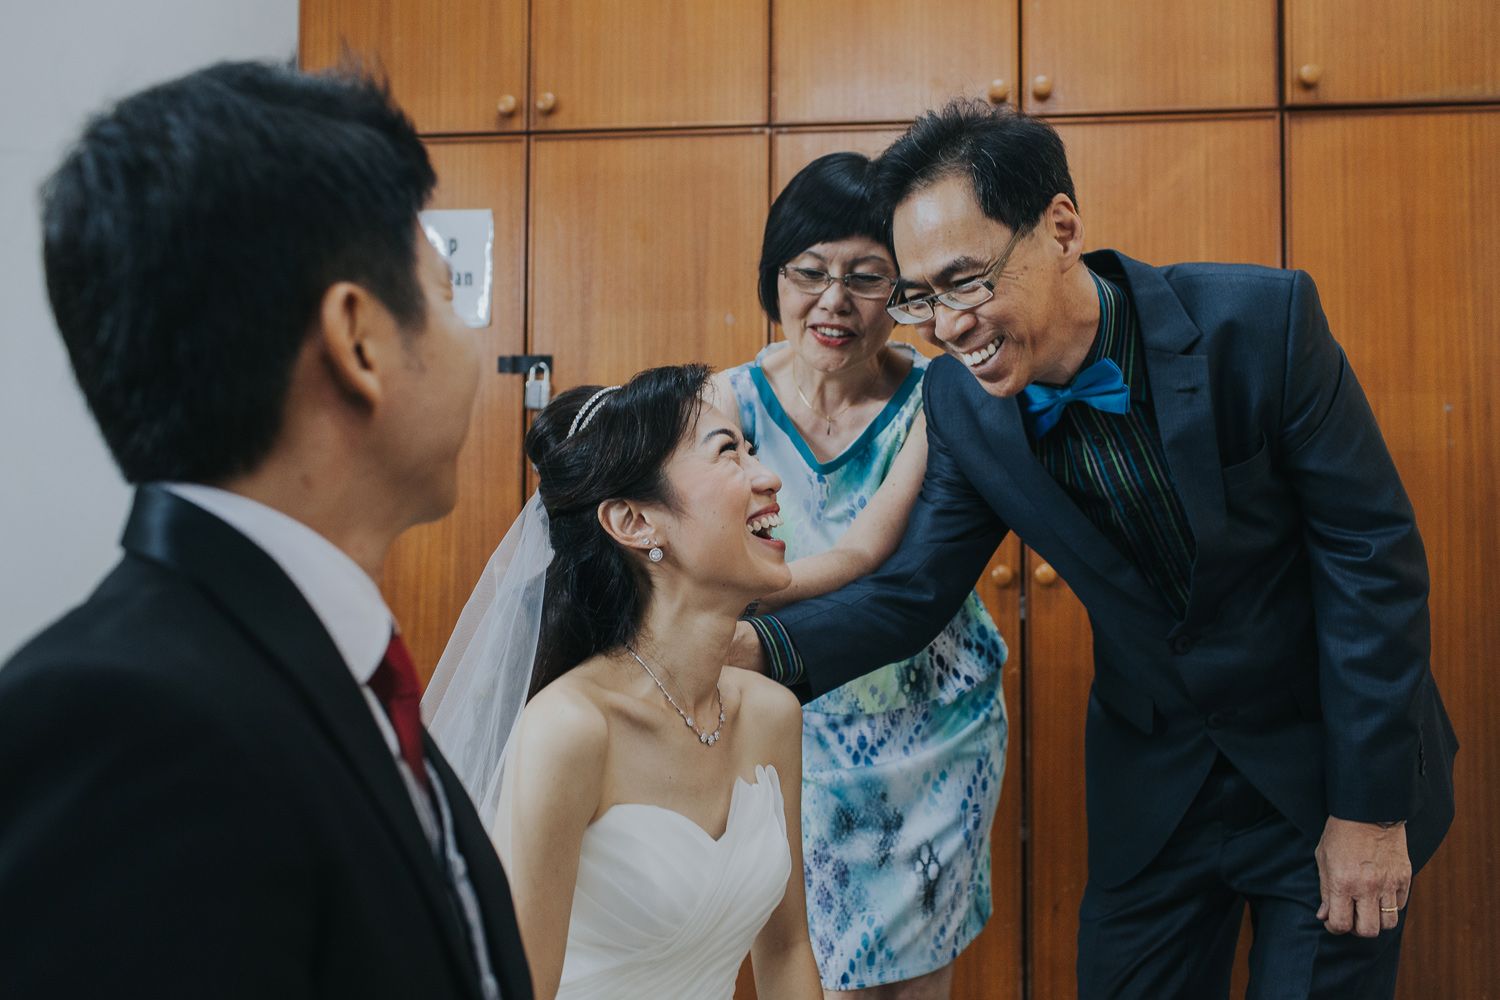 bittersweet photography Singapore wedding photographer jonathan 40